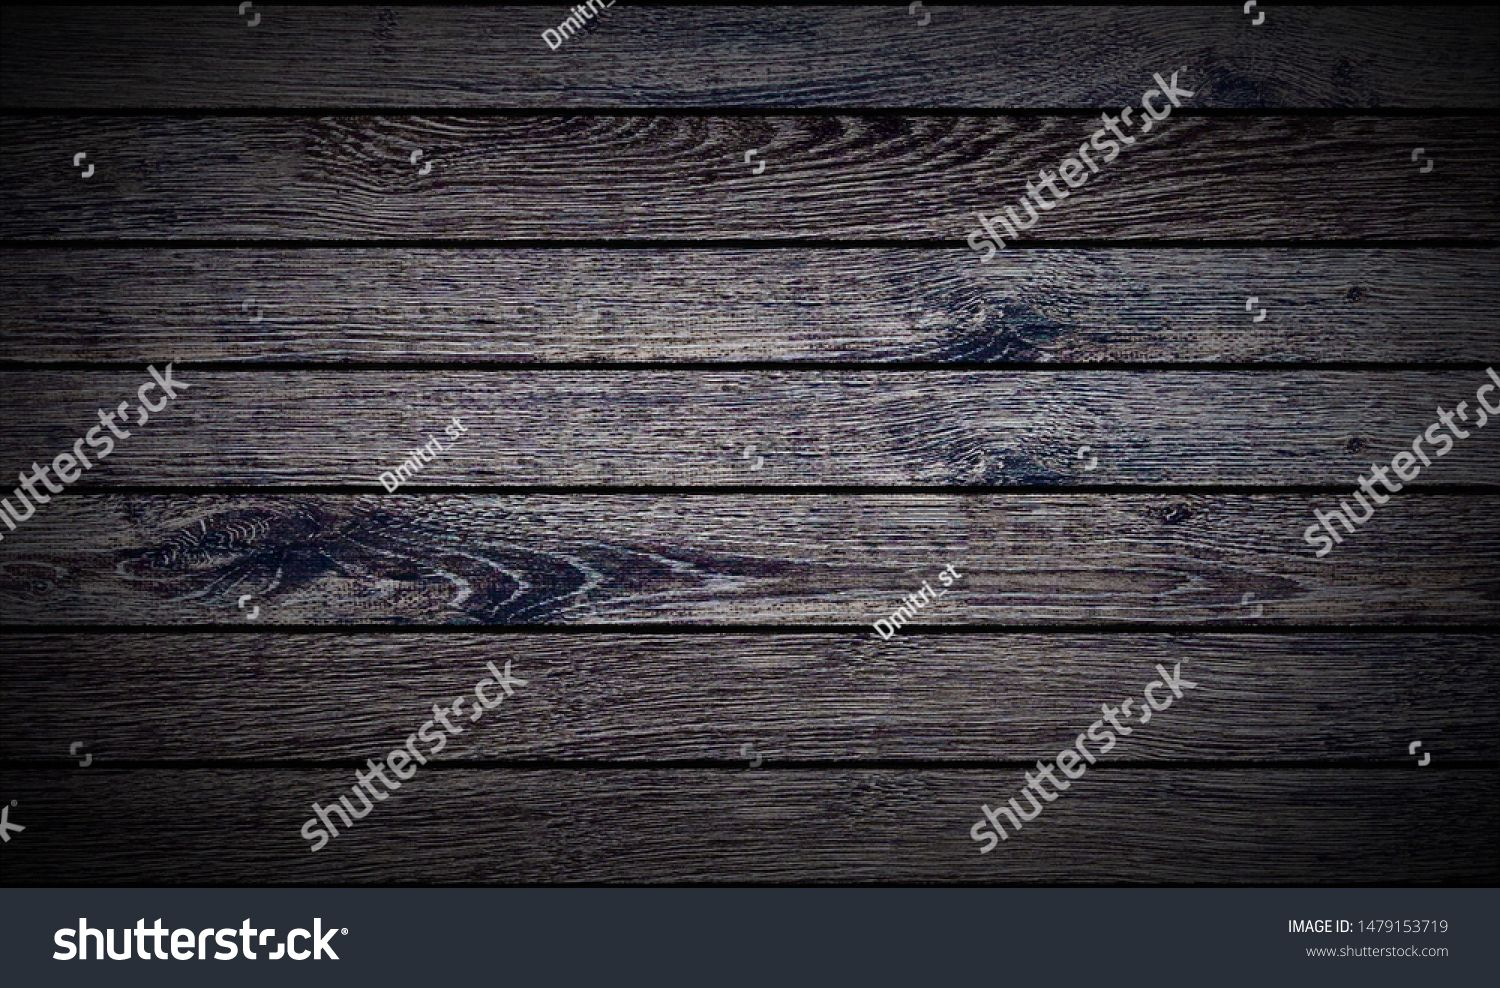 Light wood texture background surface with old natural pattern. Vintage #Sponsored , #affiliate, #texture#background#Light#wood #woodtexturebackground